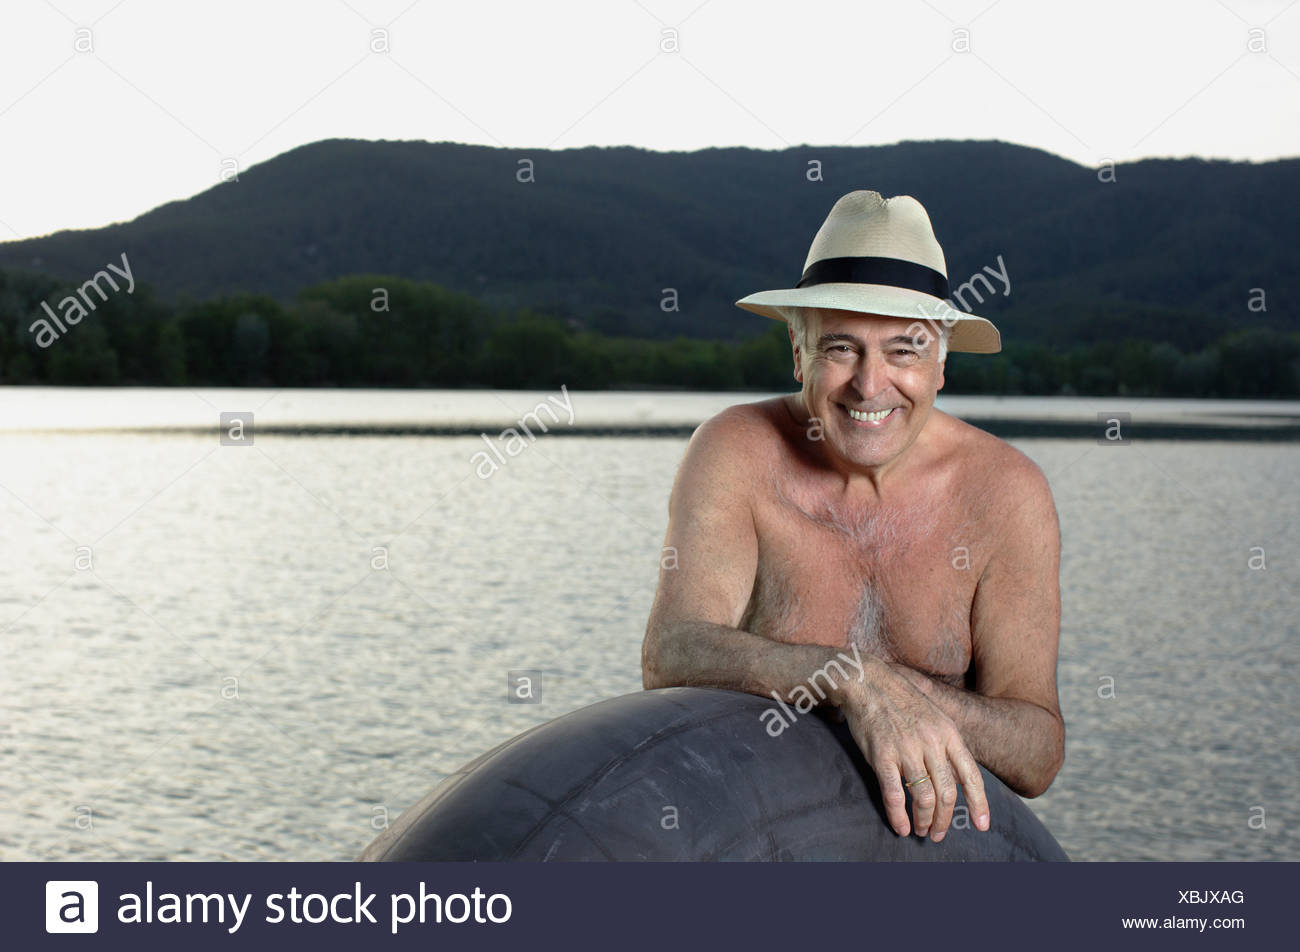 Man standing with inner tube by lake - Stock Image